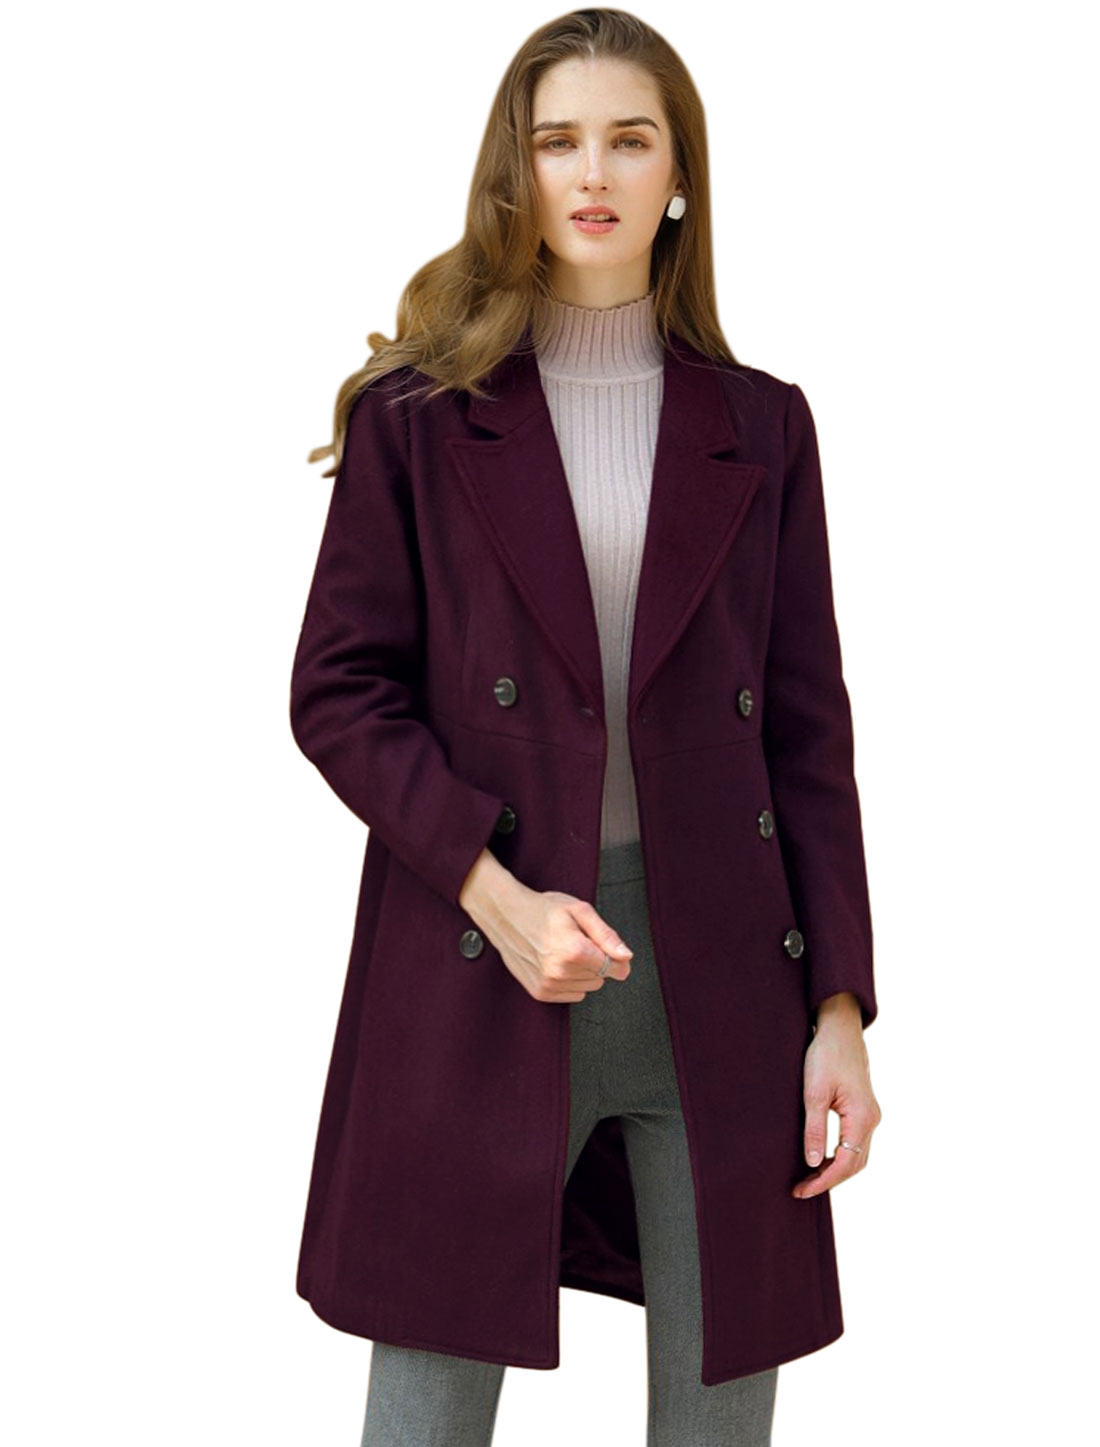 Women's Double Breasted Notched Lapel Winter Long Trench Coat Burgundy L